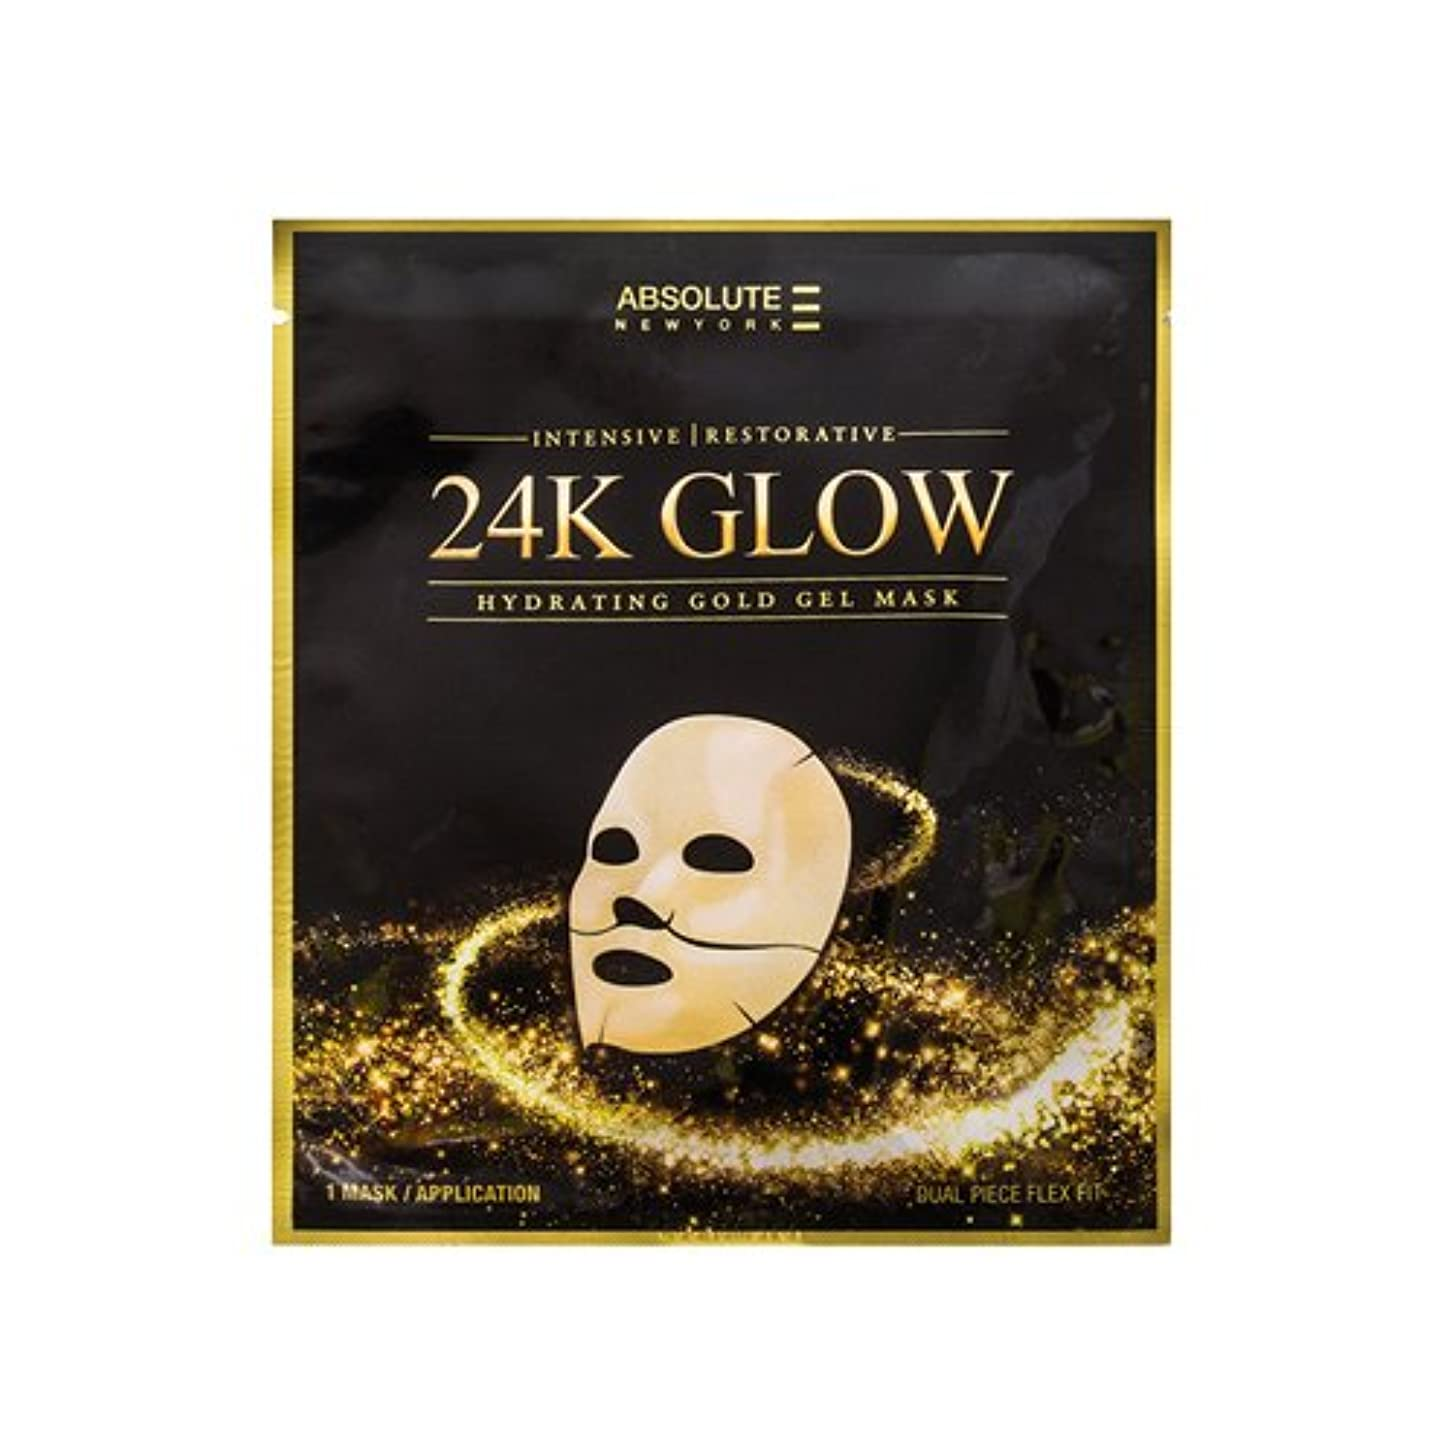 Absolute 24K Glow Gold Gel Mask (並行輸入品)